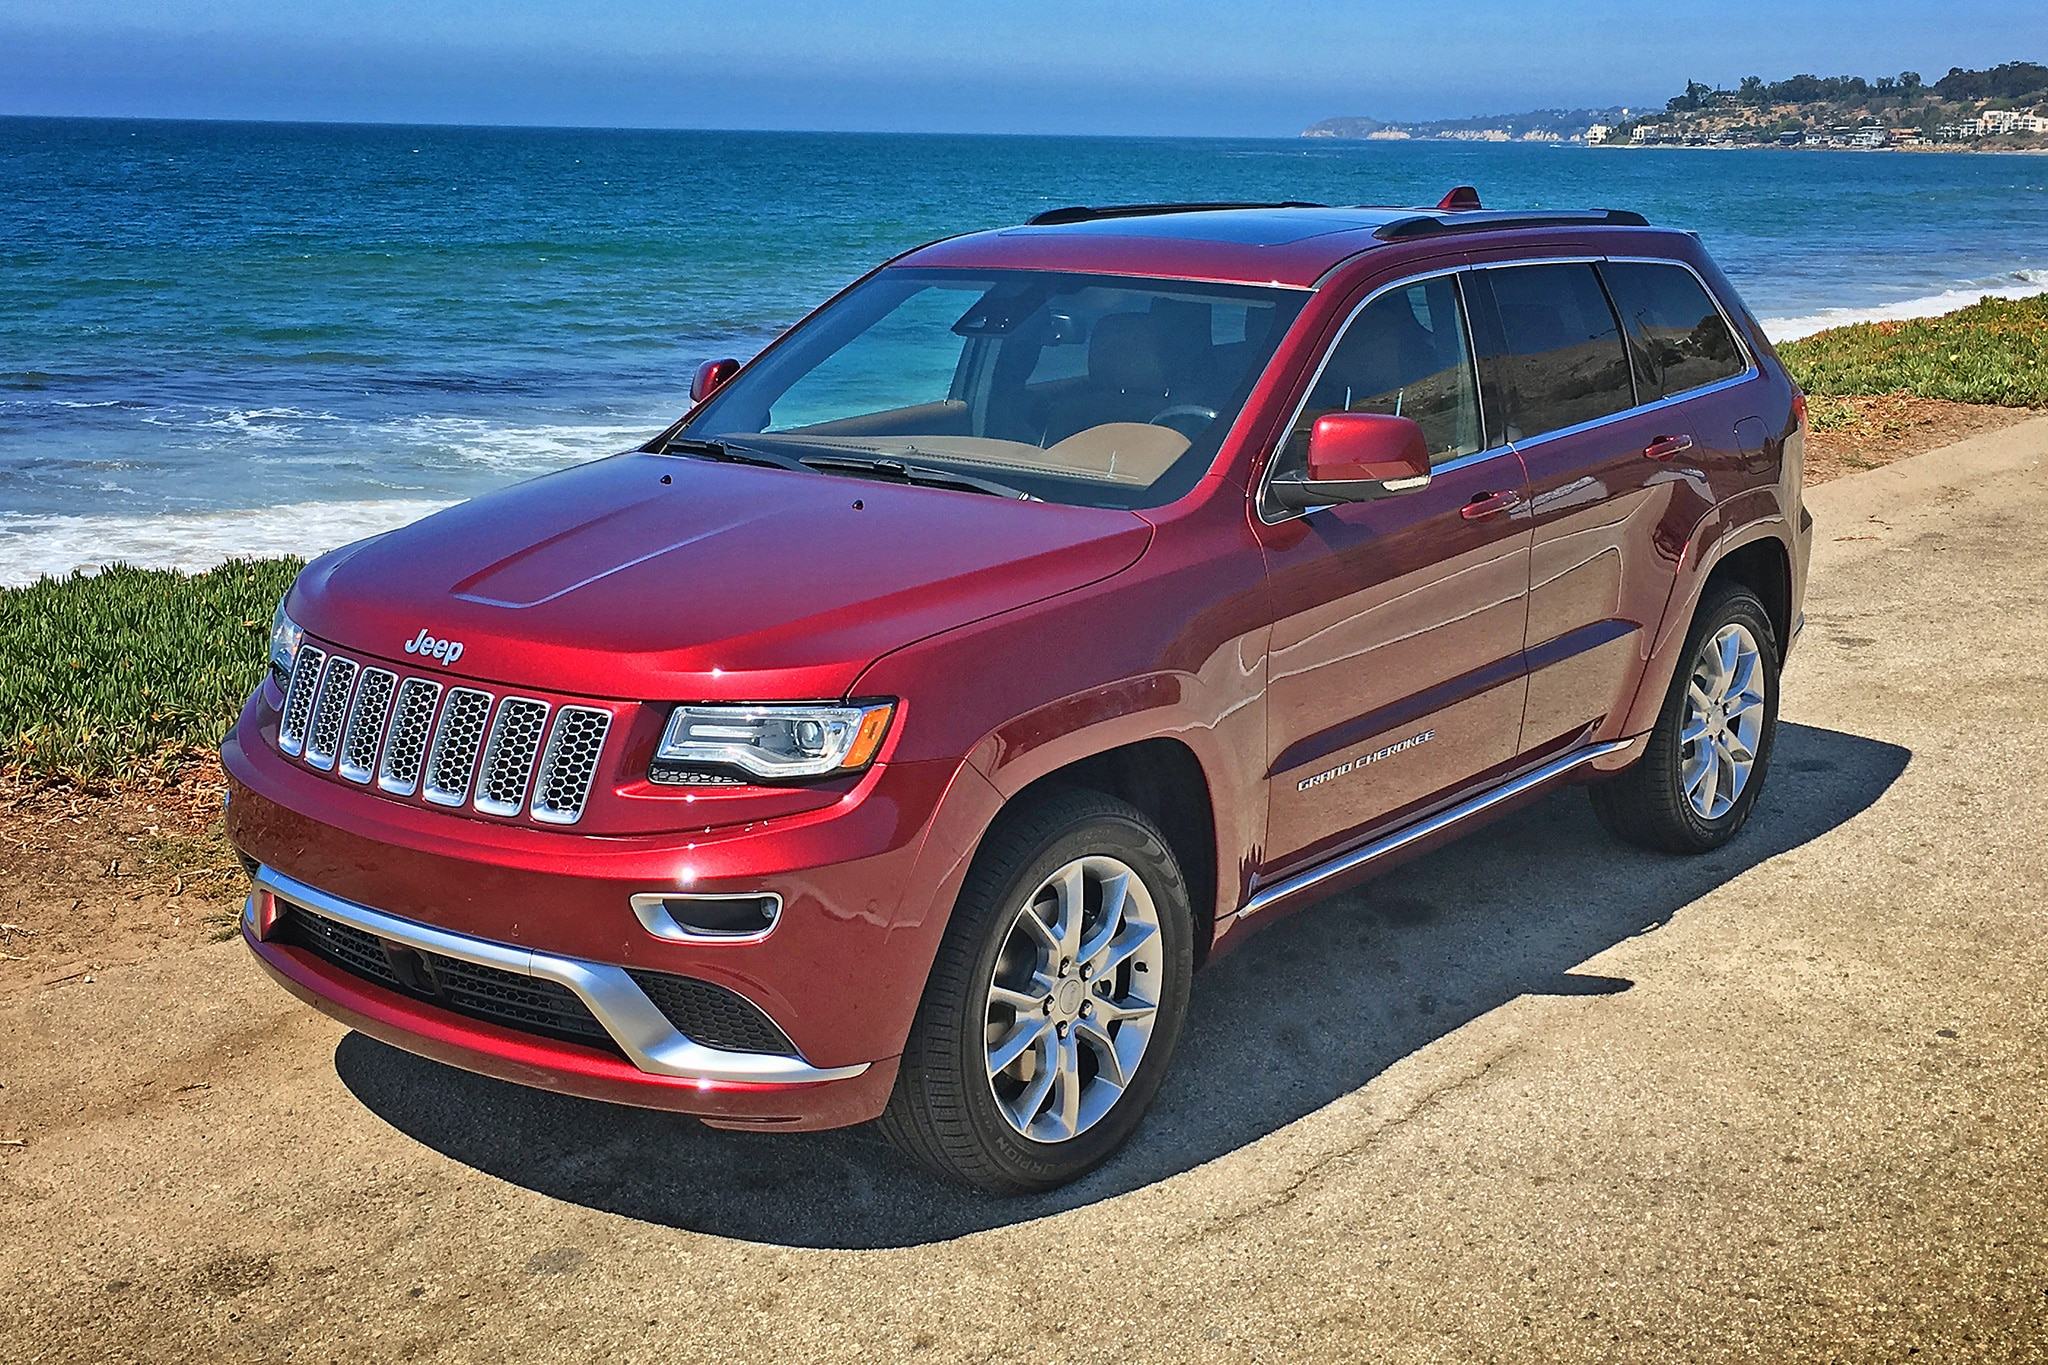 2016 Jeep Grand Cherokee Summit 4 4 EcoDiesel Front Three Quarter 02